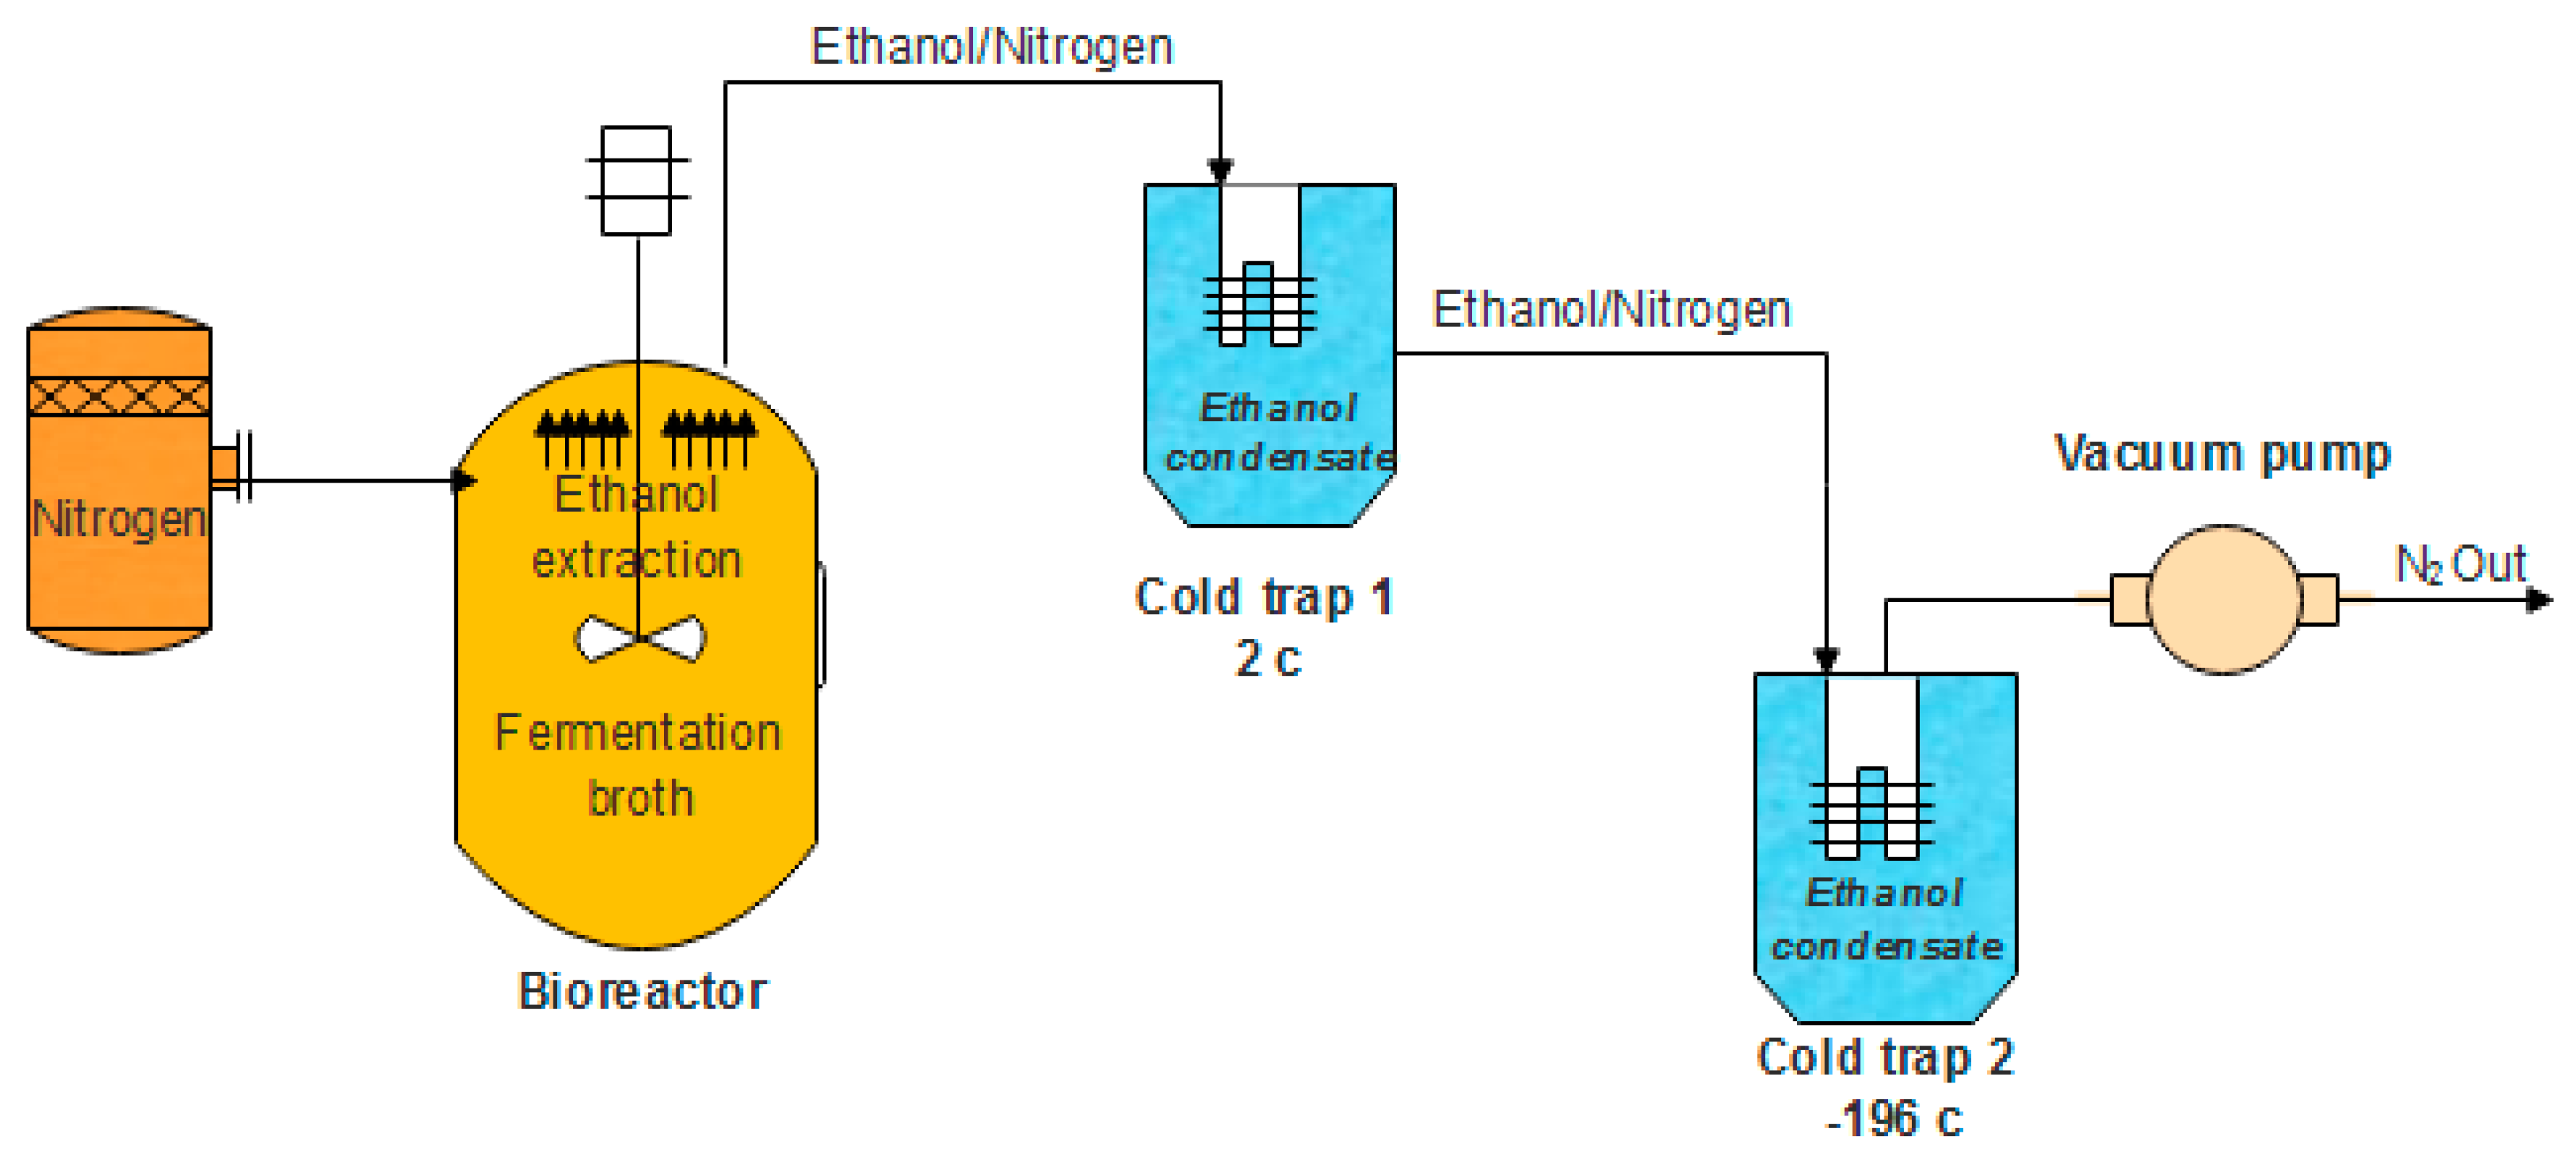 Processes Free Full Text Overview Of Alternative Ethanol Removal Techniques For Enhancing Bioethanol Recovery From Fermentation Broth Html